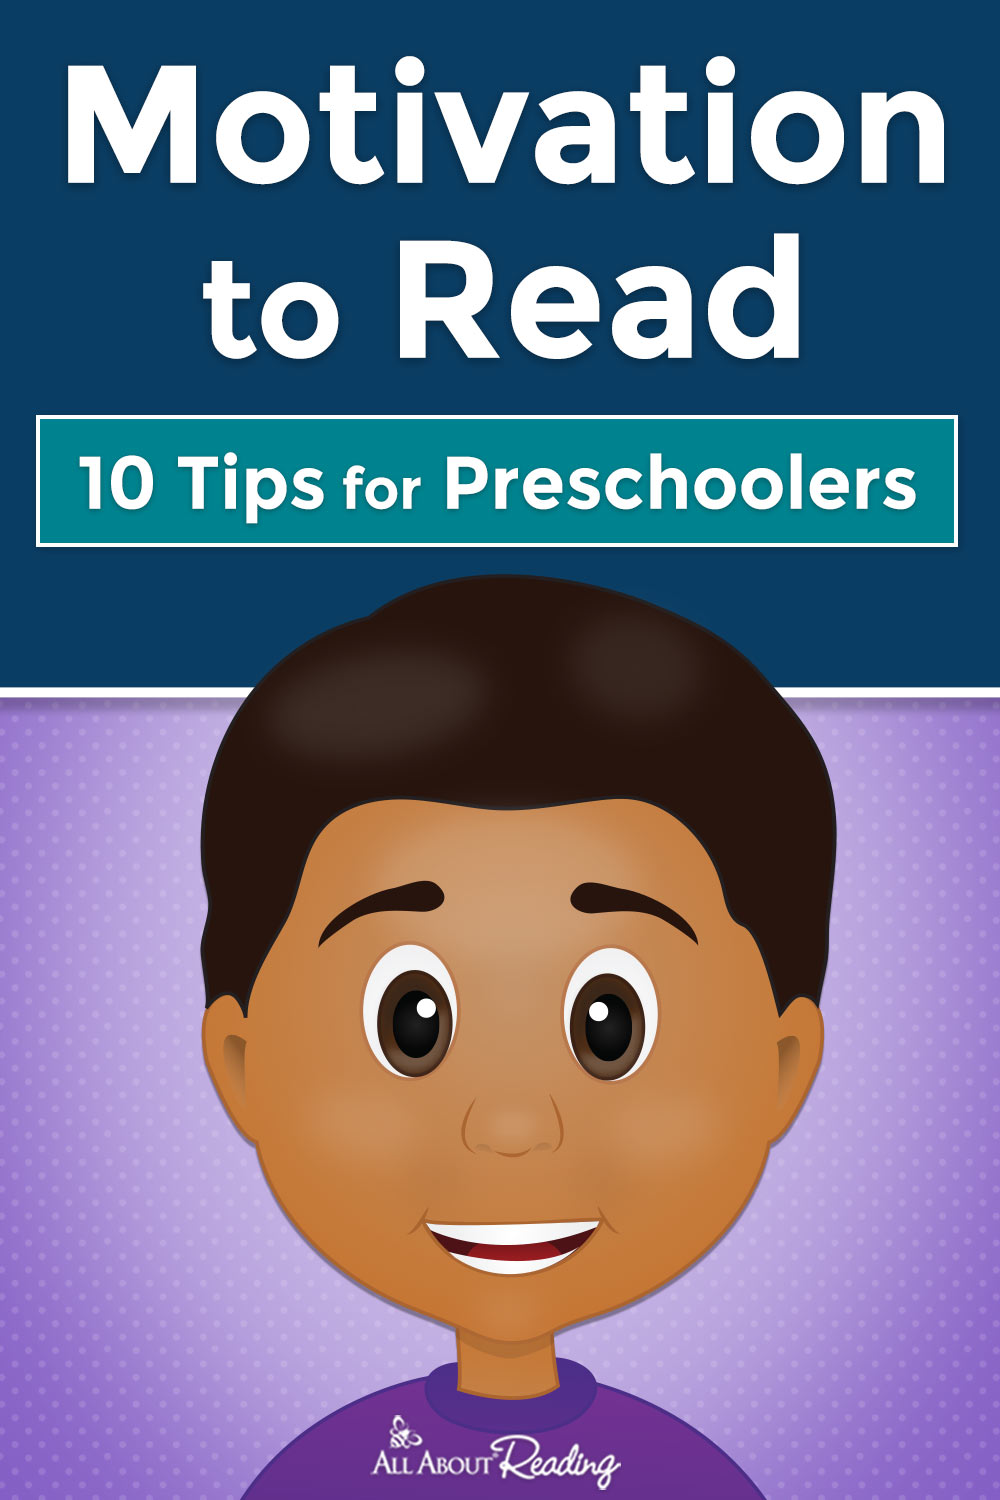 motivation to read for preschoolers pinterest graphic